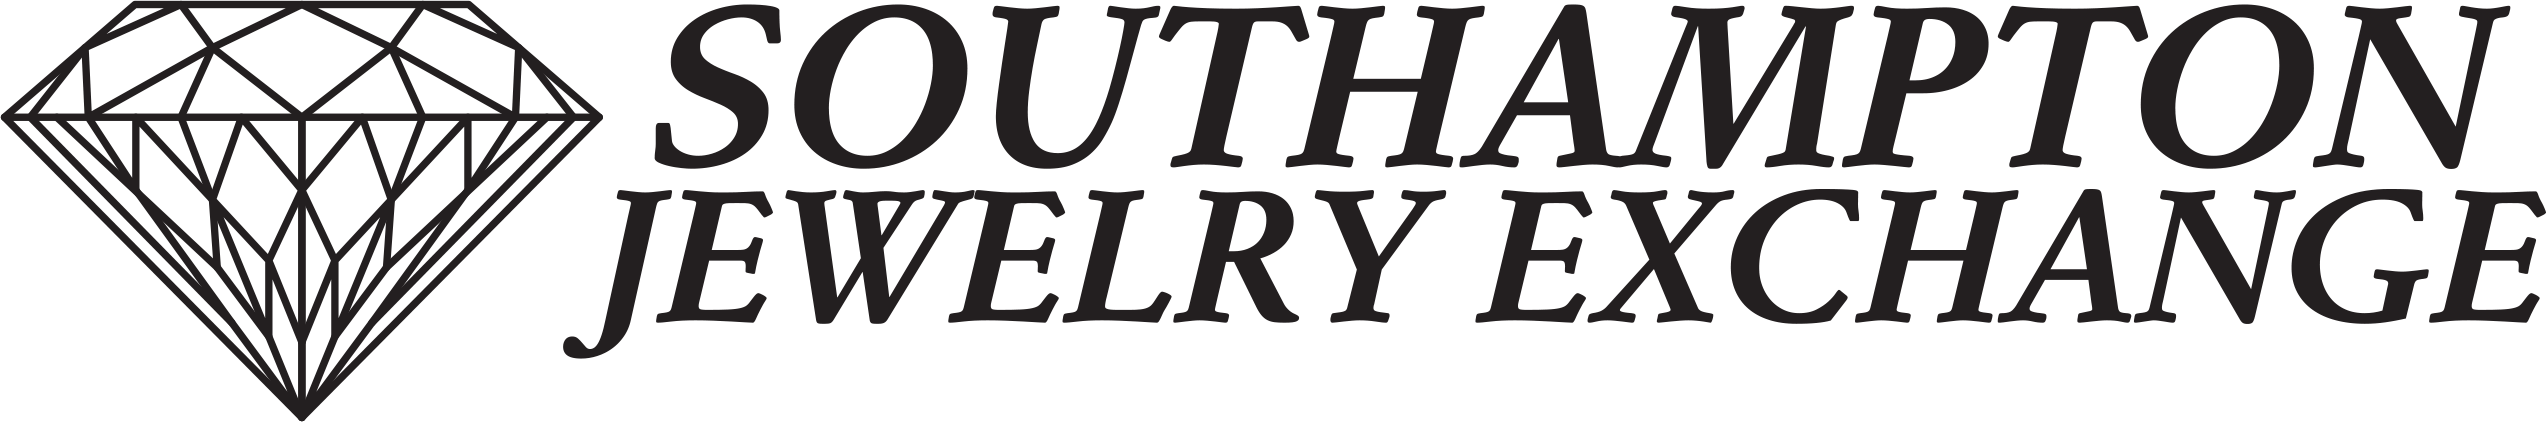 Southampton Jewelry Exchange logo